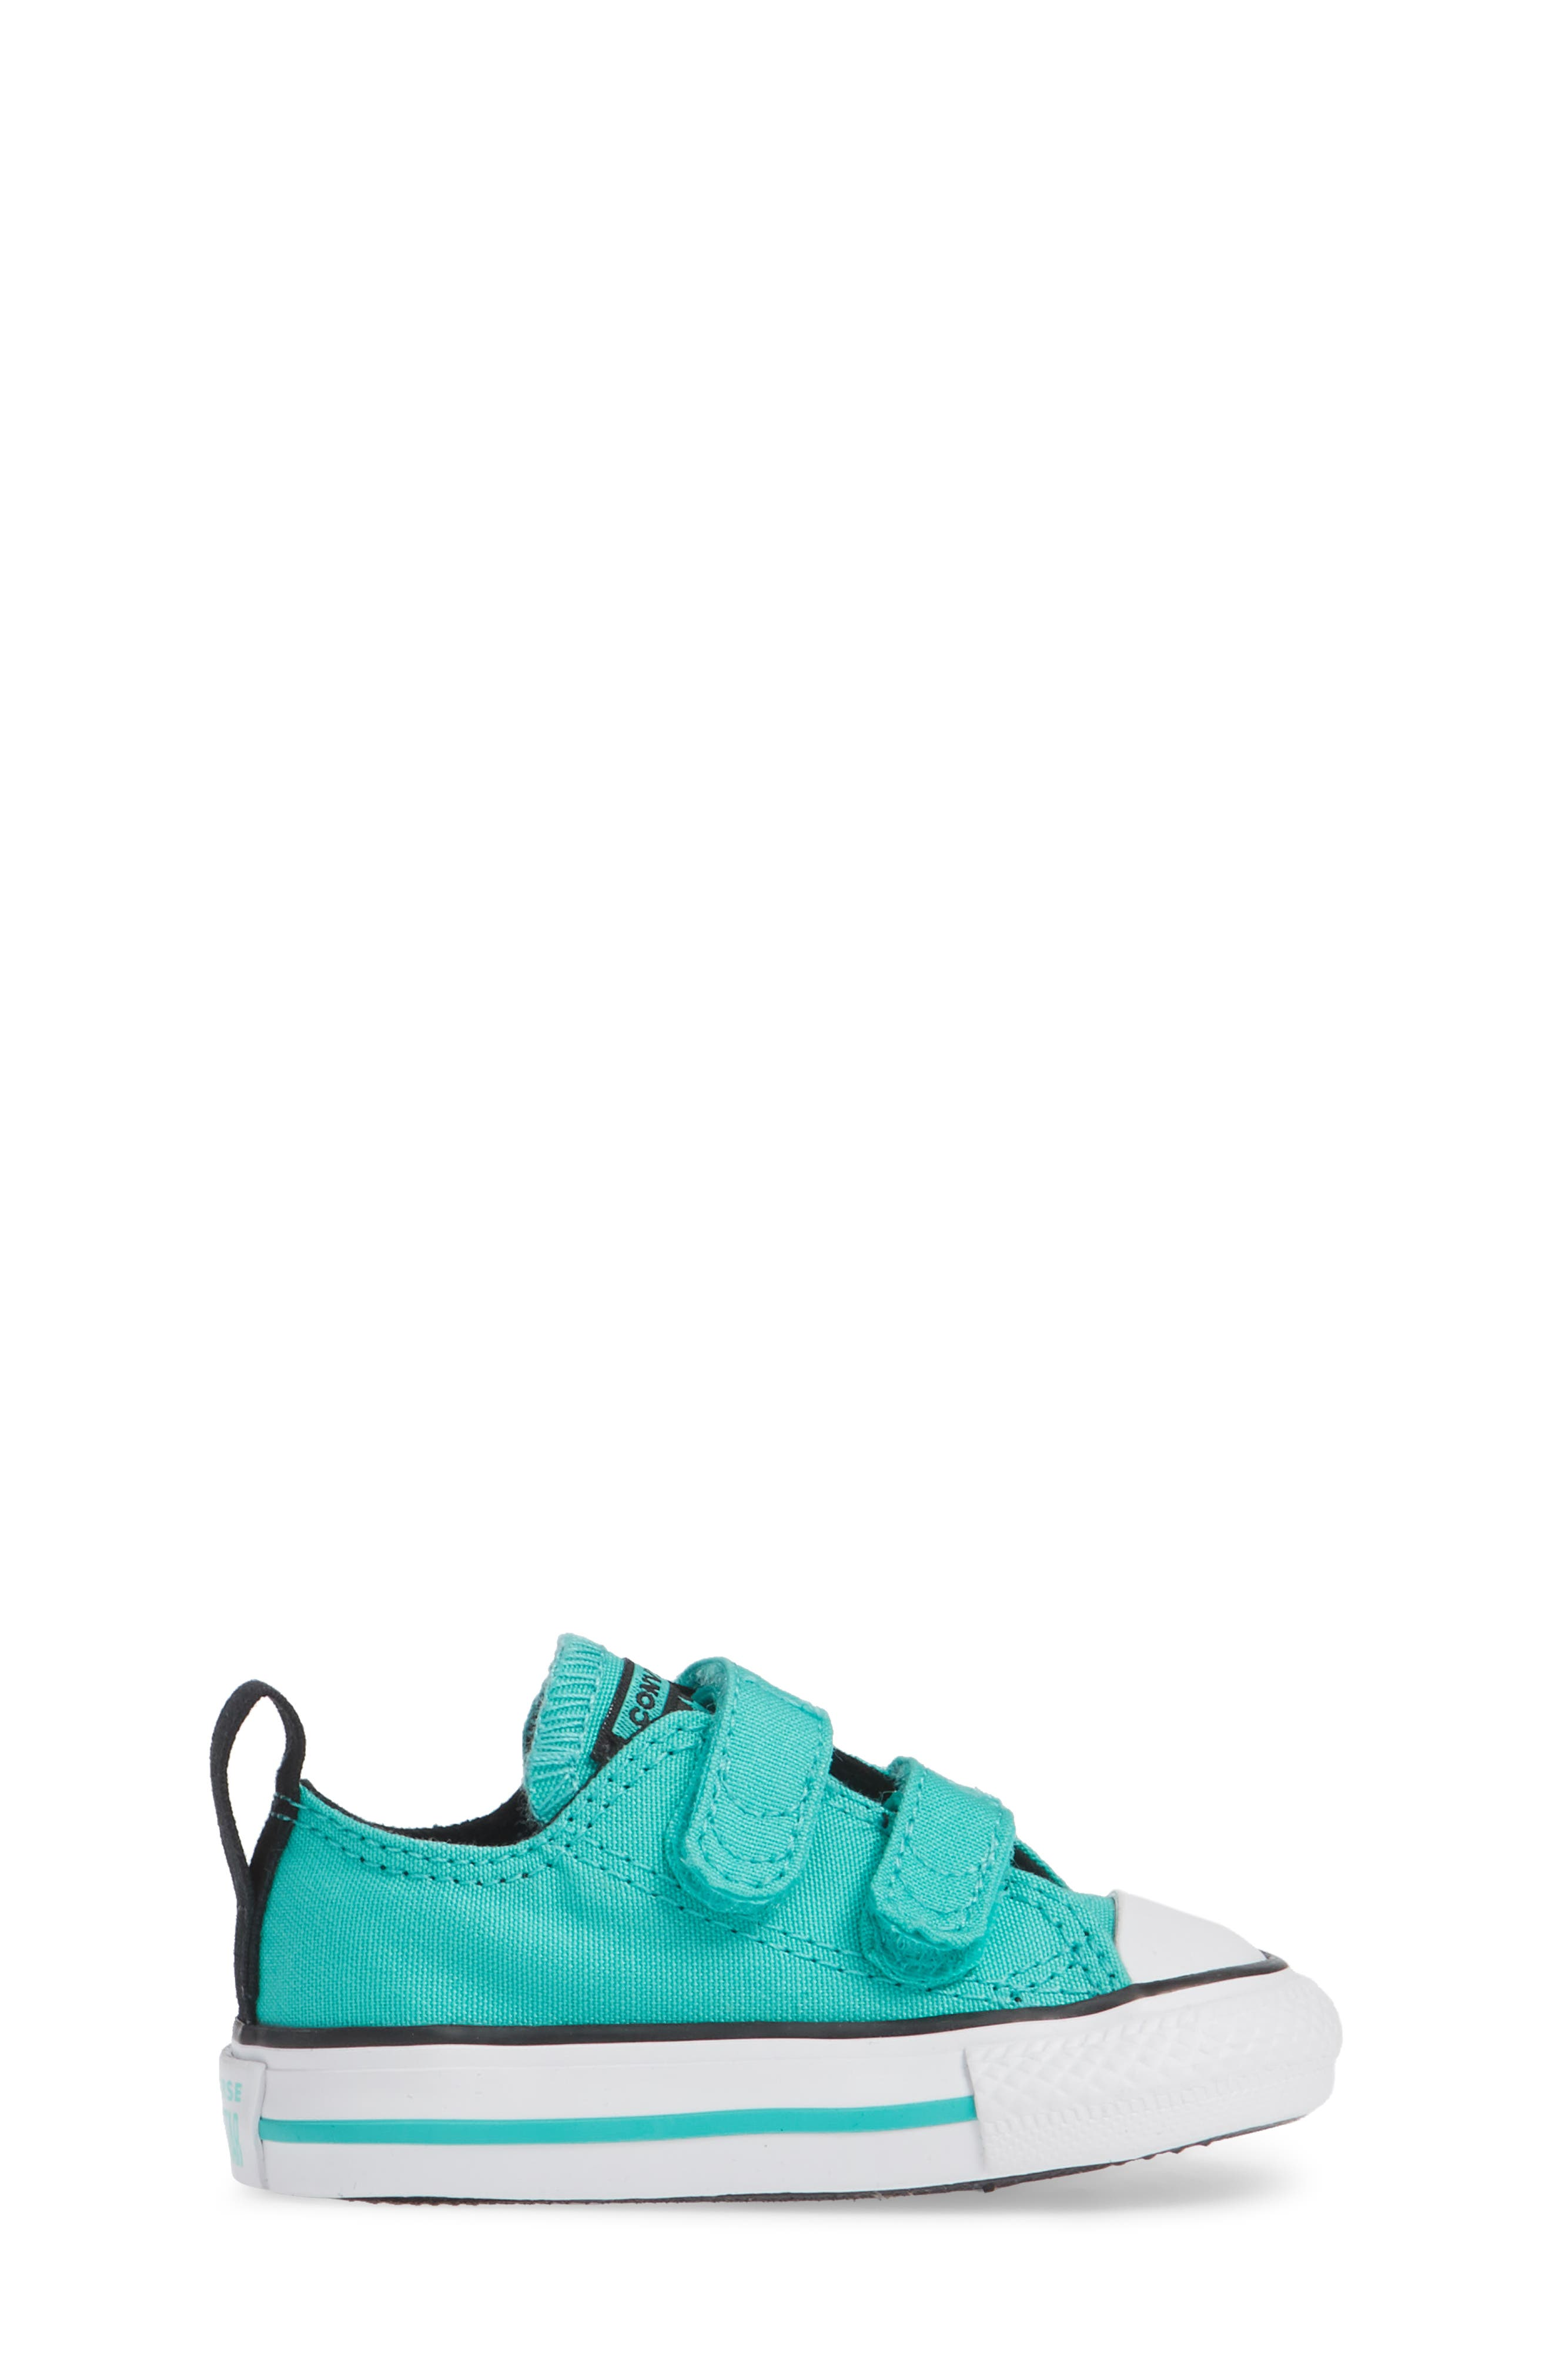 Chuck Taylor<sup>®</sup> 'Double Strap' Sneaker,                             Alternate thumbnail 3, color,                             PURE TEAL